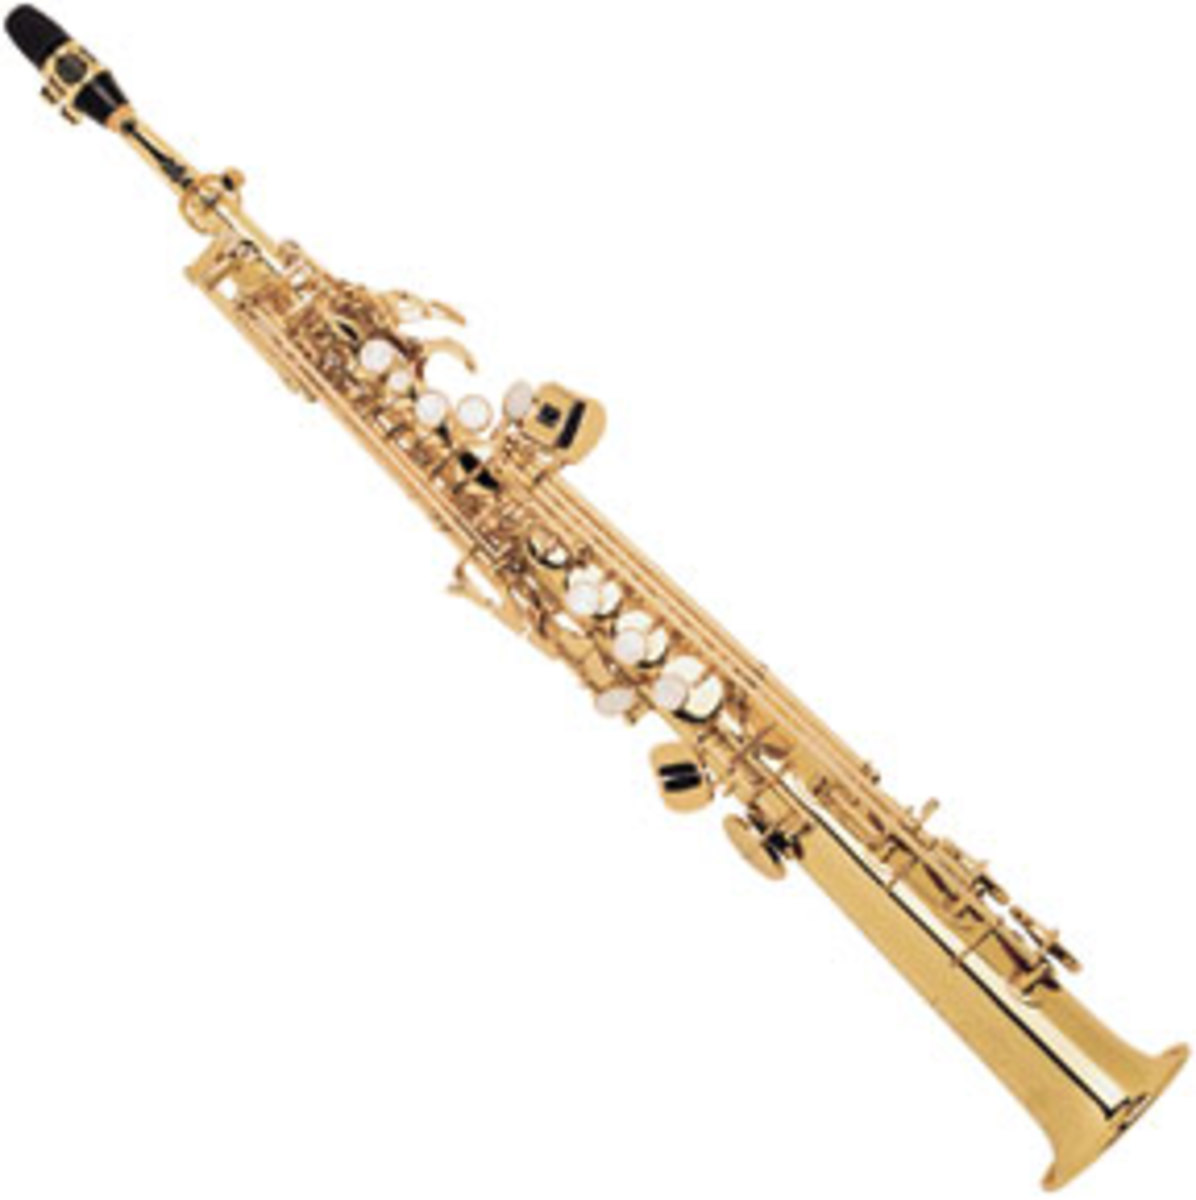 Best Saxophones For Beginners: What Is The Best Student Sax